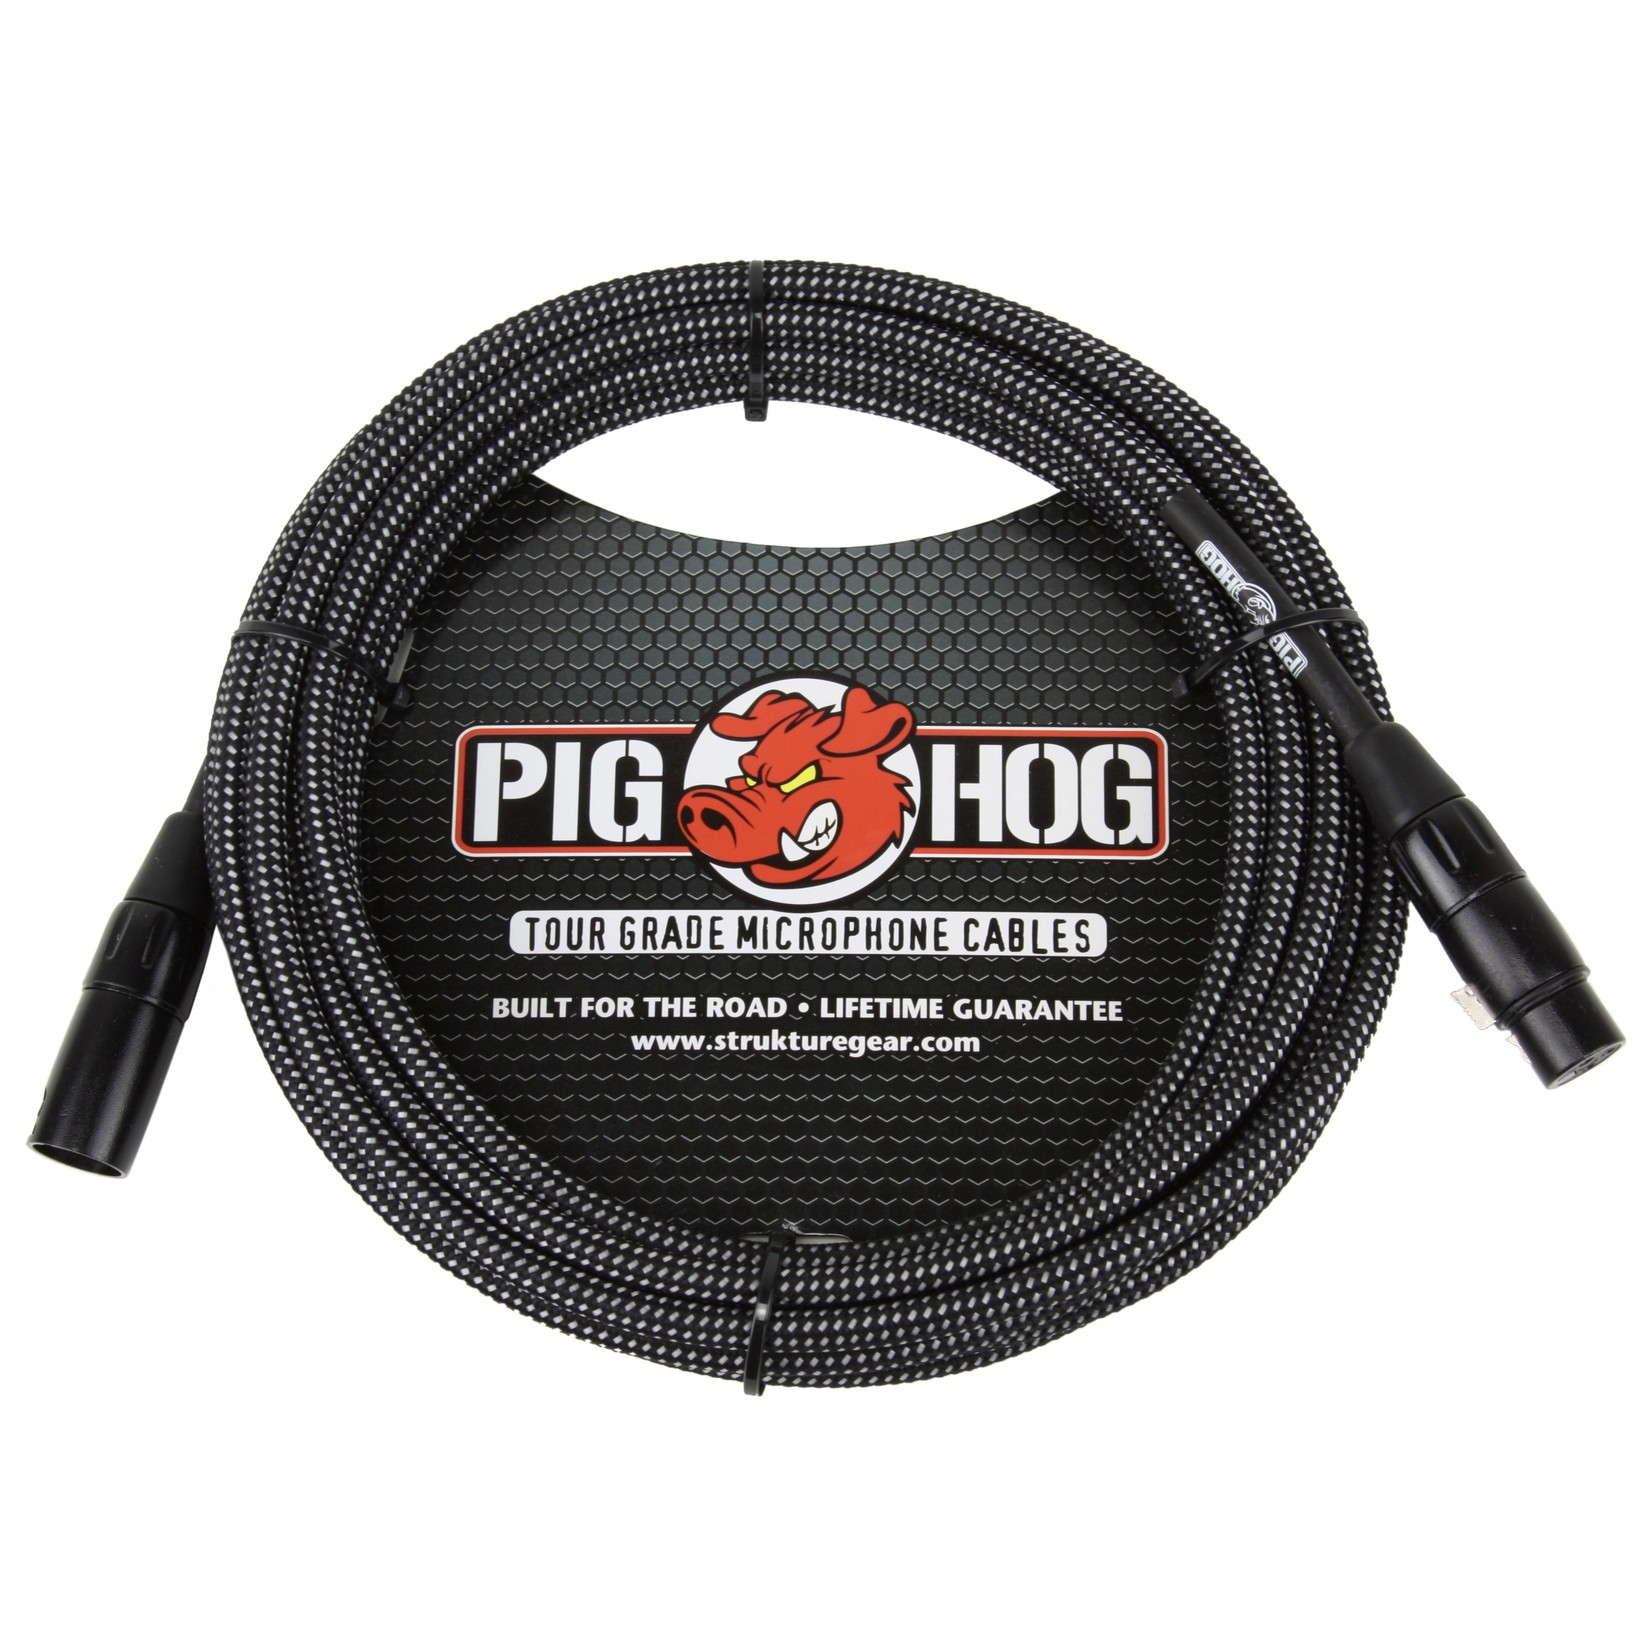 Pig Hog Pig Hog Black & White Woven Tour Grade Mic Cable, 30ft XLR